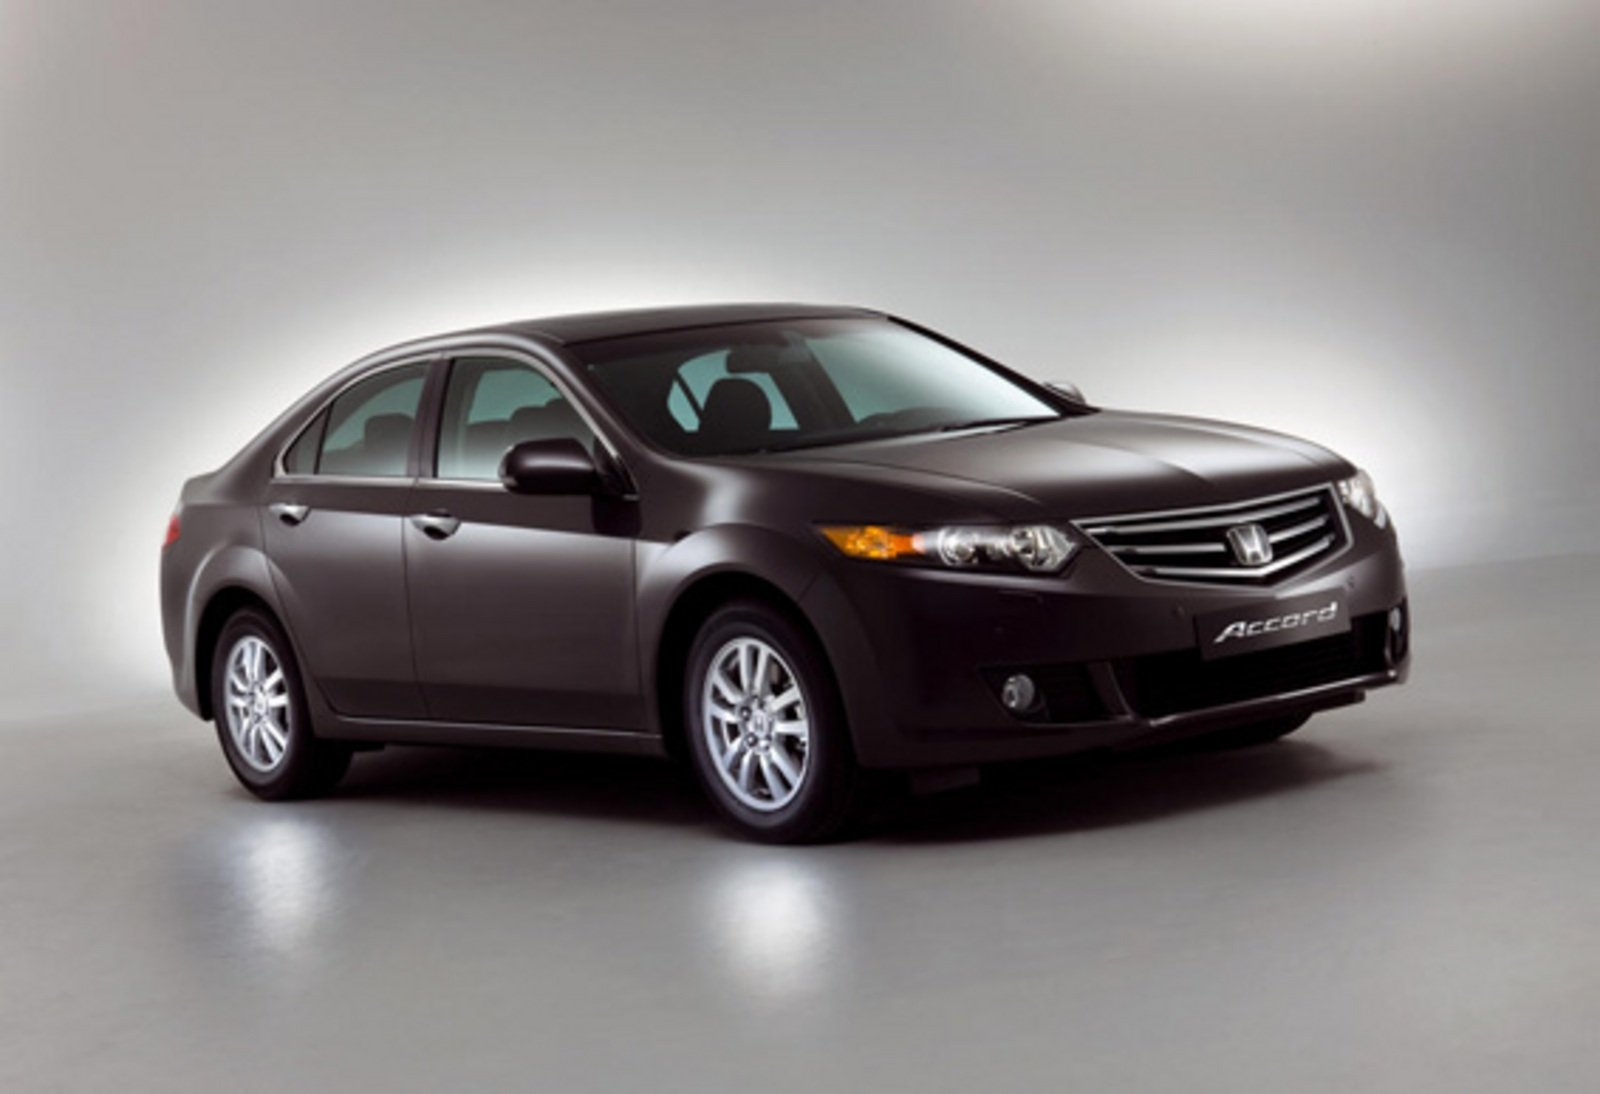 2009 honda accord european model review top speed. Black Bedroom Furniture Sets. Home Design Ideas